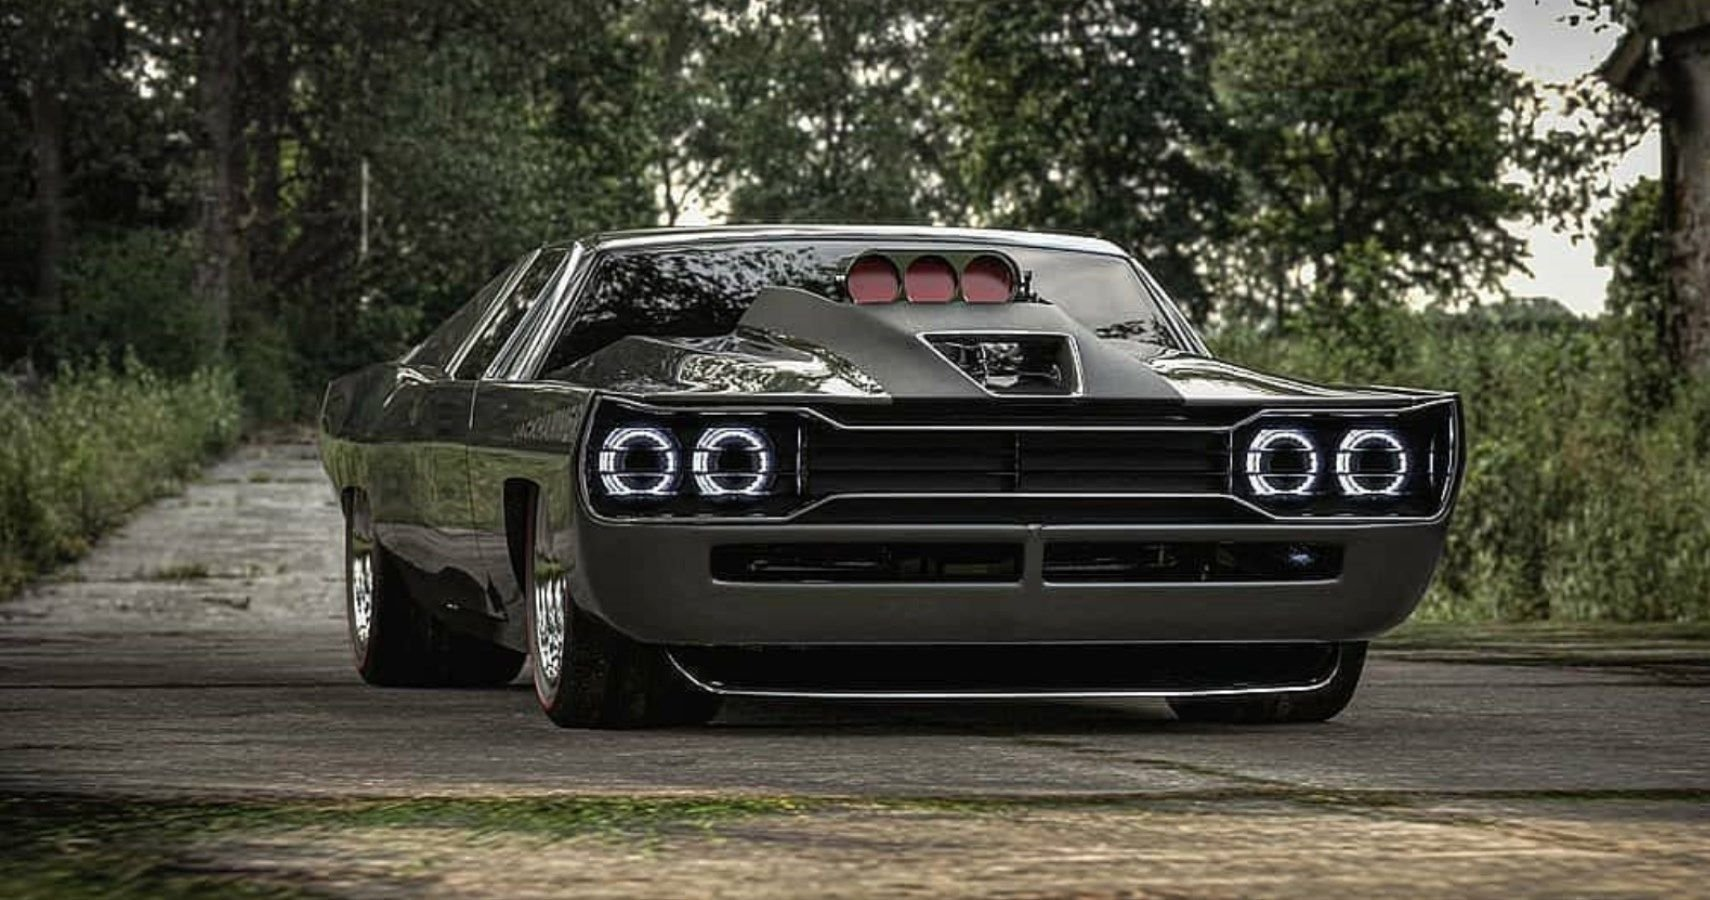 Jackhammer Muscle Car Blends Plymouth GTX And Dodge Charger Into A Striking Ride